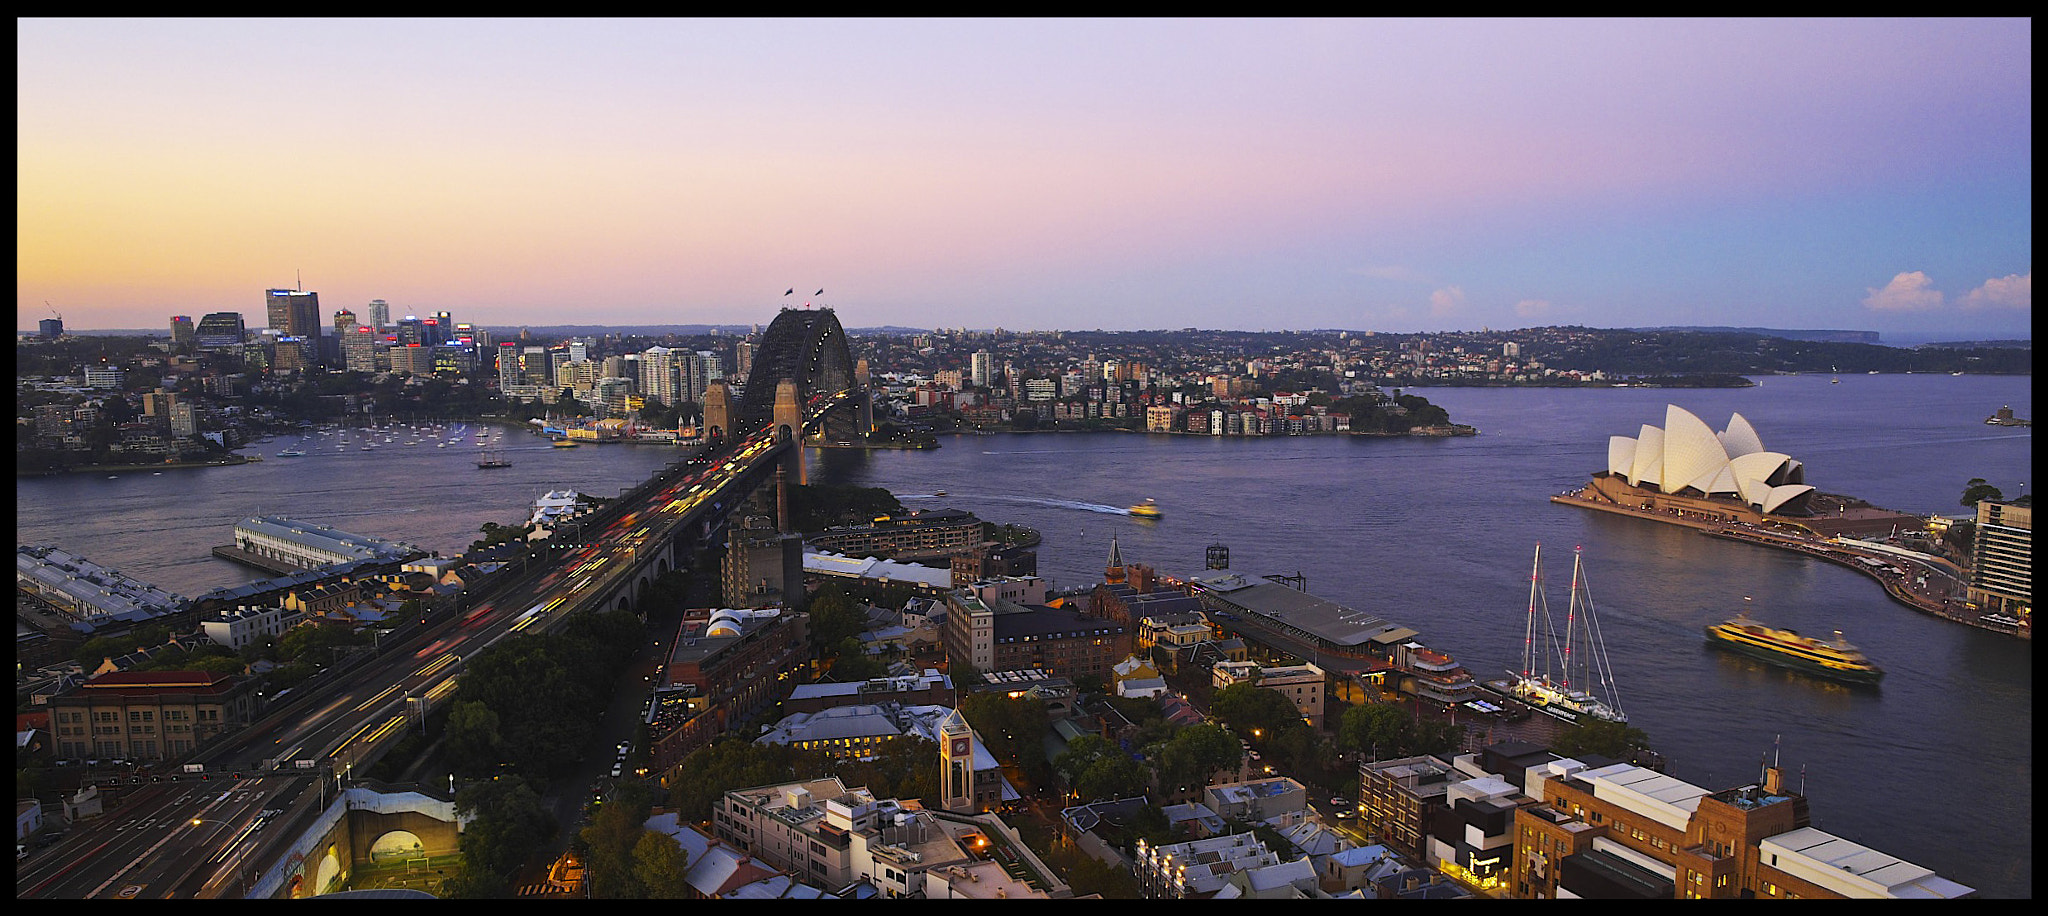 Photograph Sunset over Sydney Harbour by Rufo Taguiam on 500px